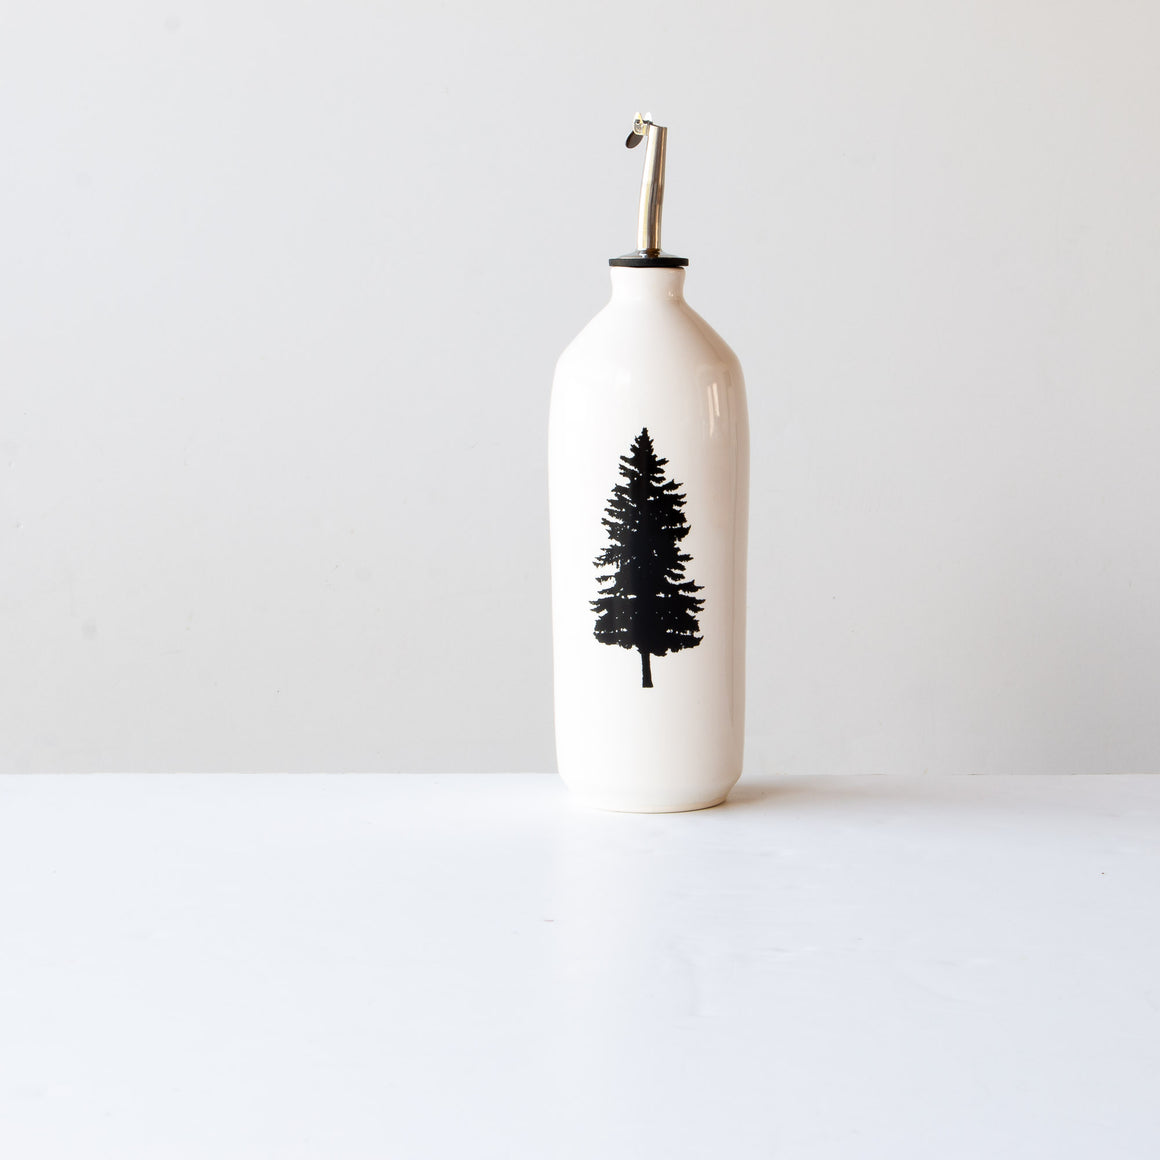 Pine Tree - Handmade White Glossy Porcelain Cruet - Sold by Chic & Basta